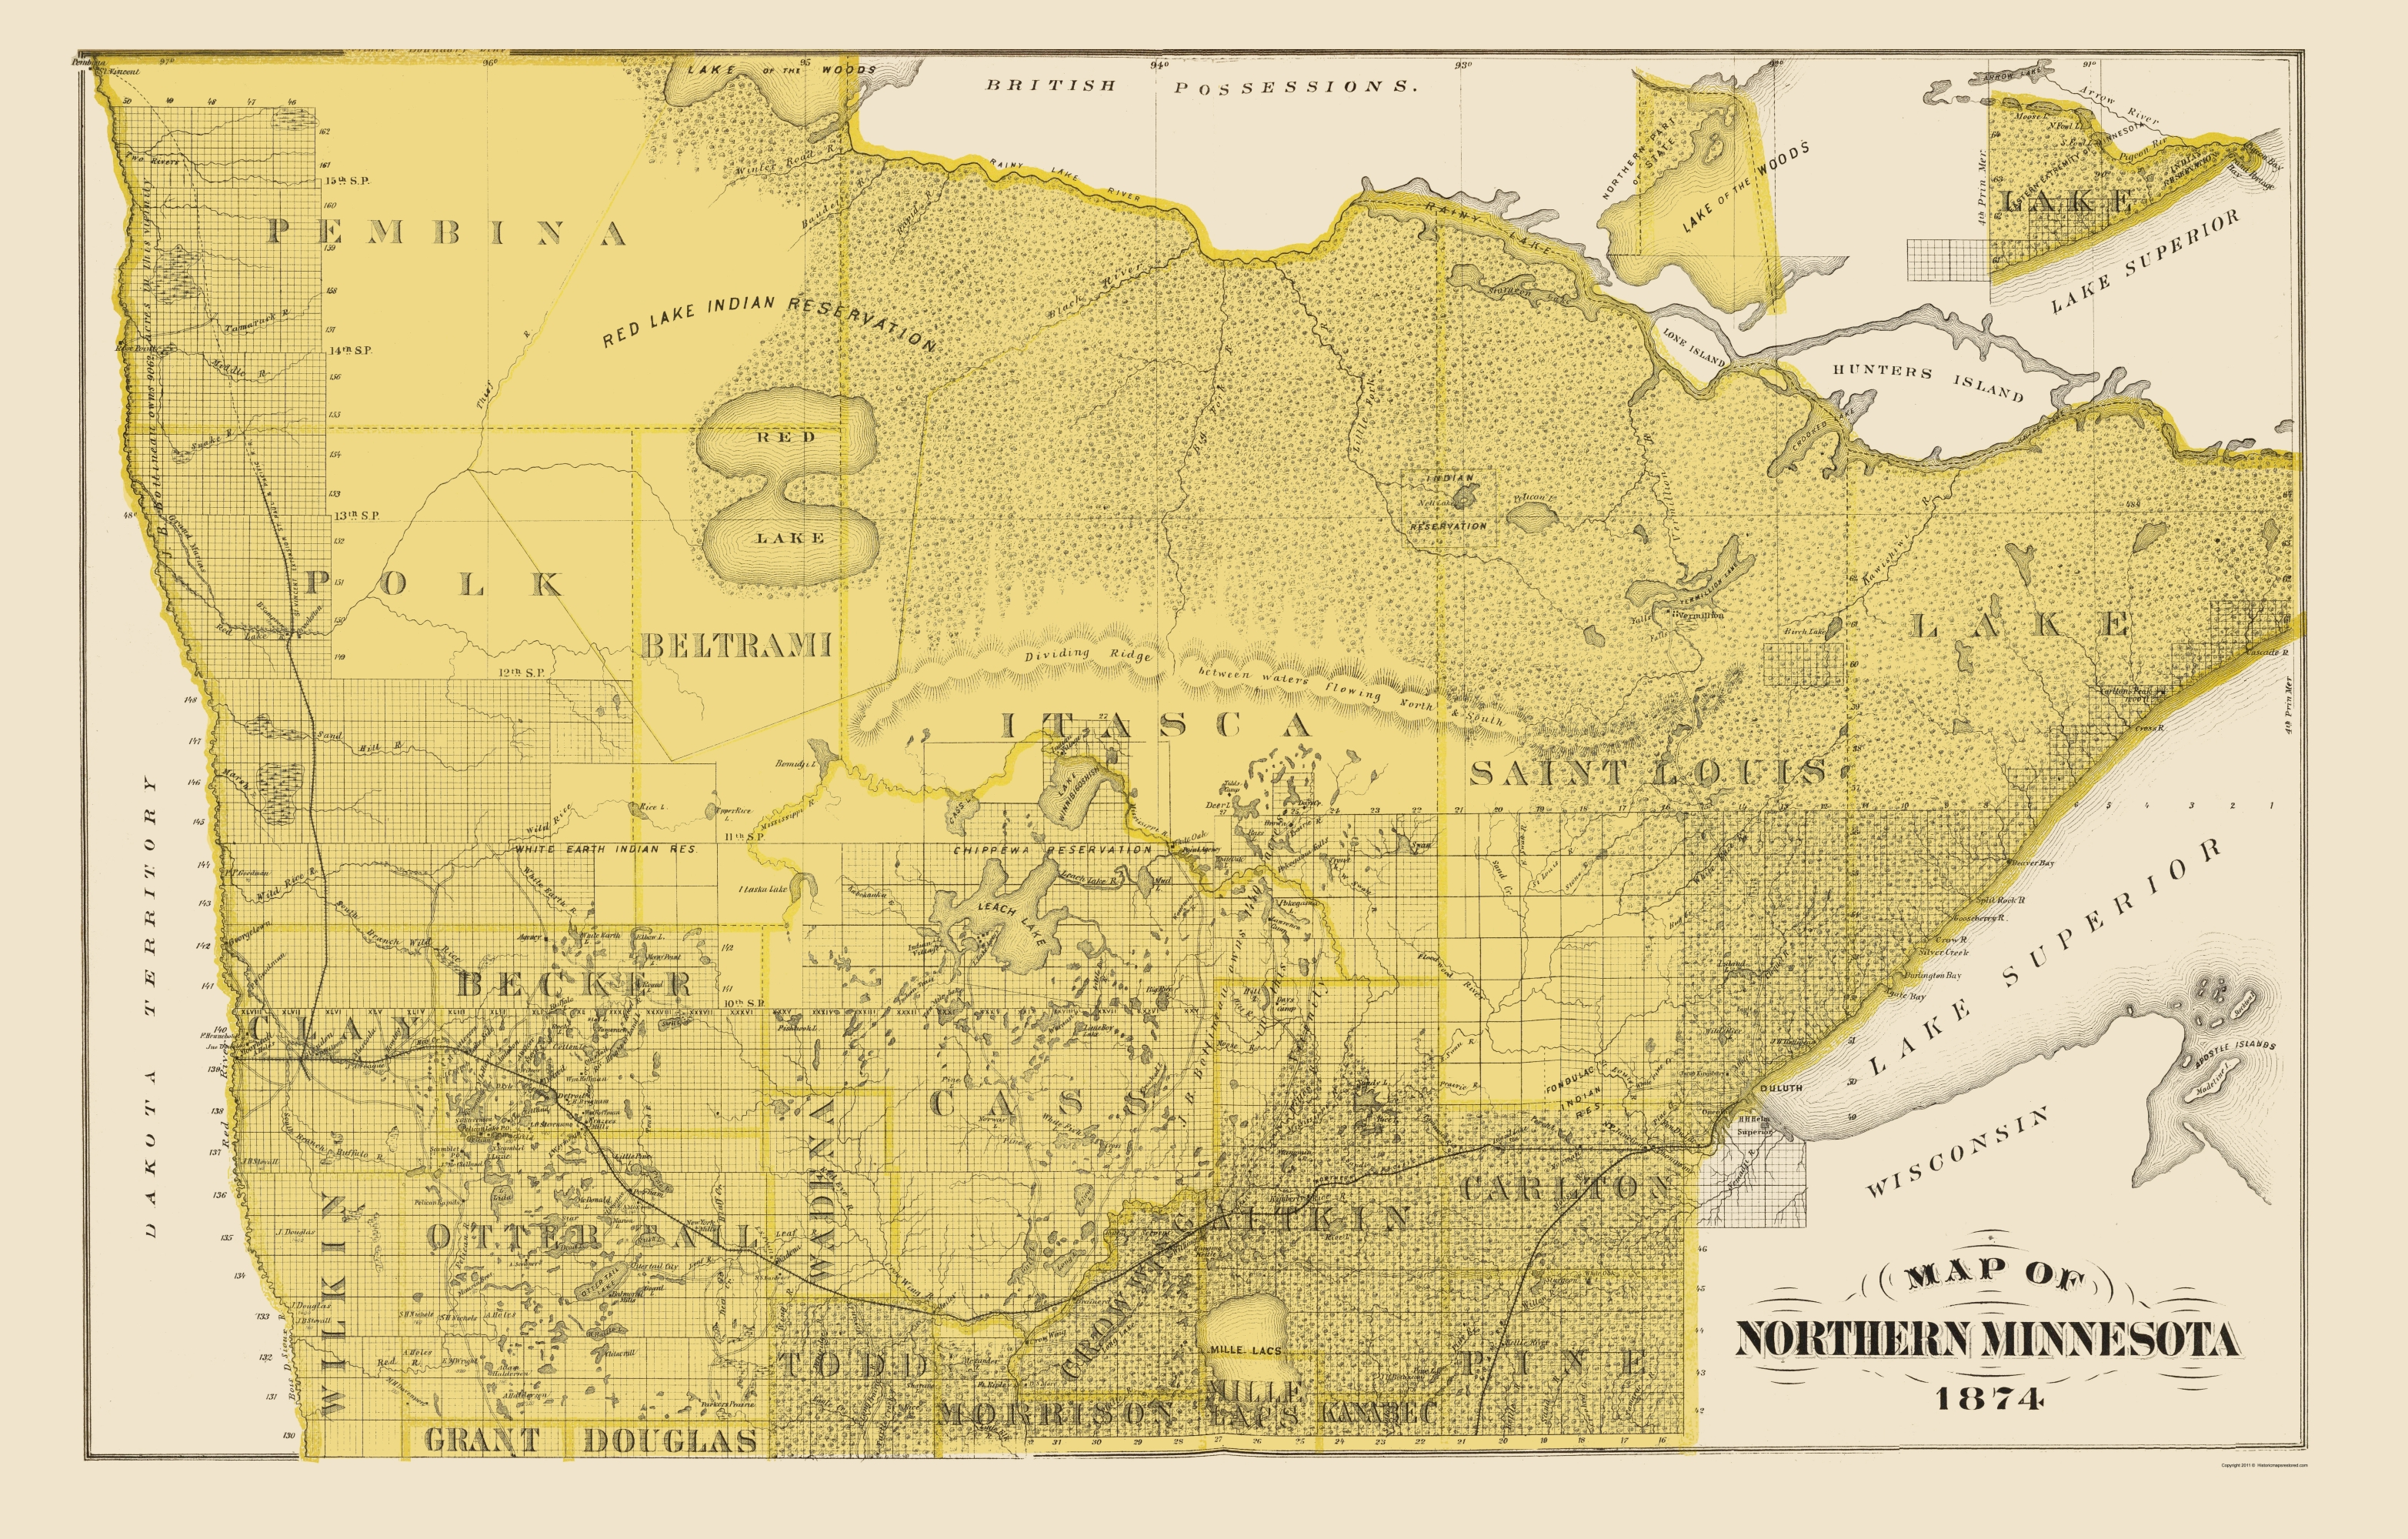 Old State Map - Northern Minnesota - Andreas 1874 - 23 x 36.00